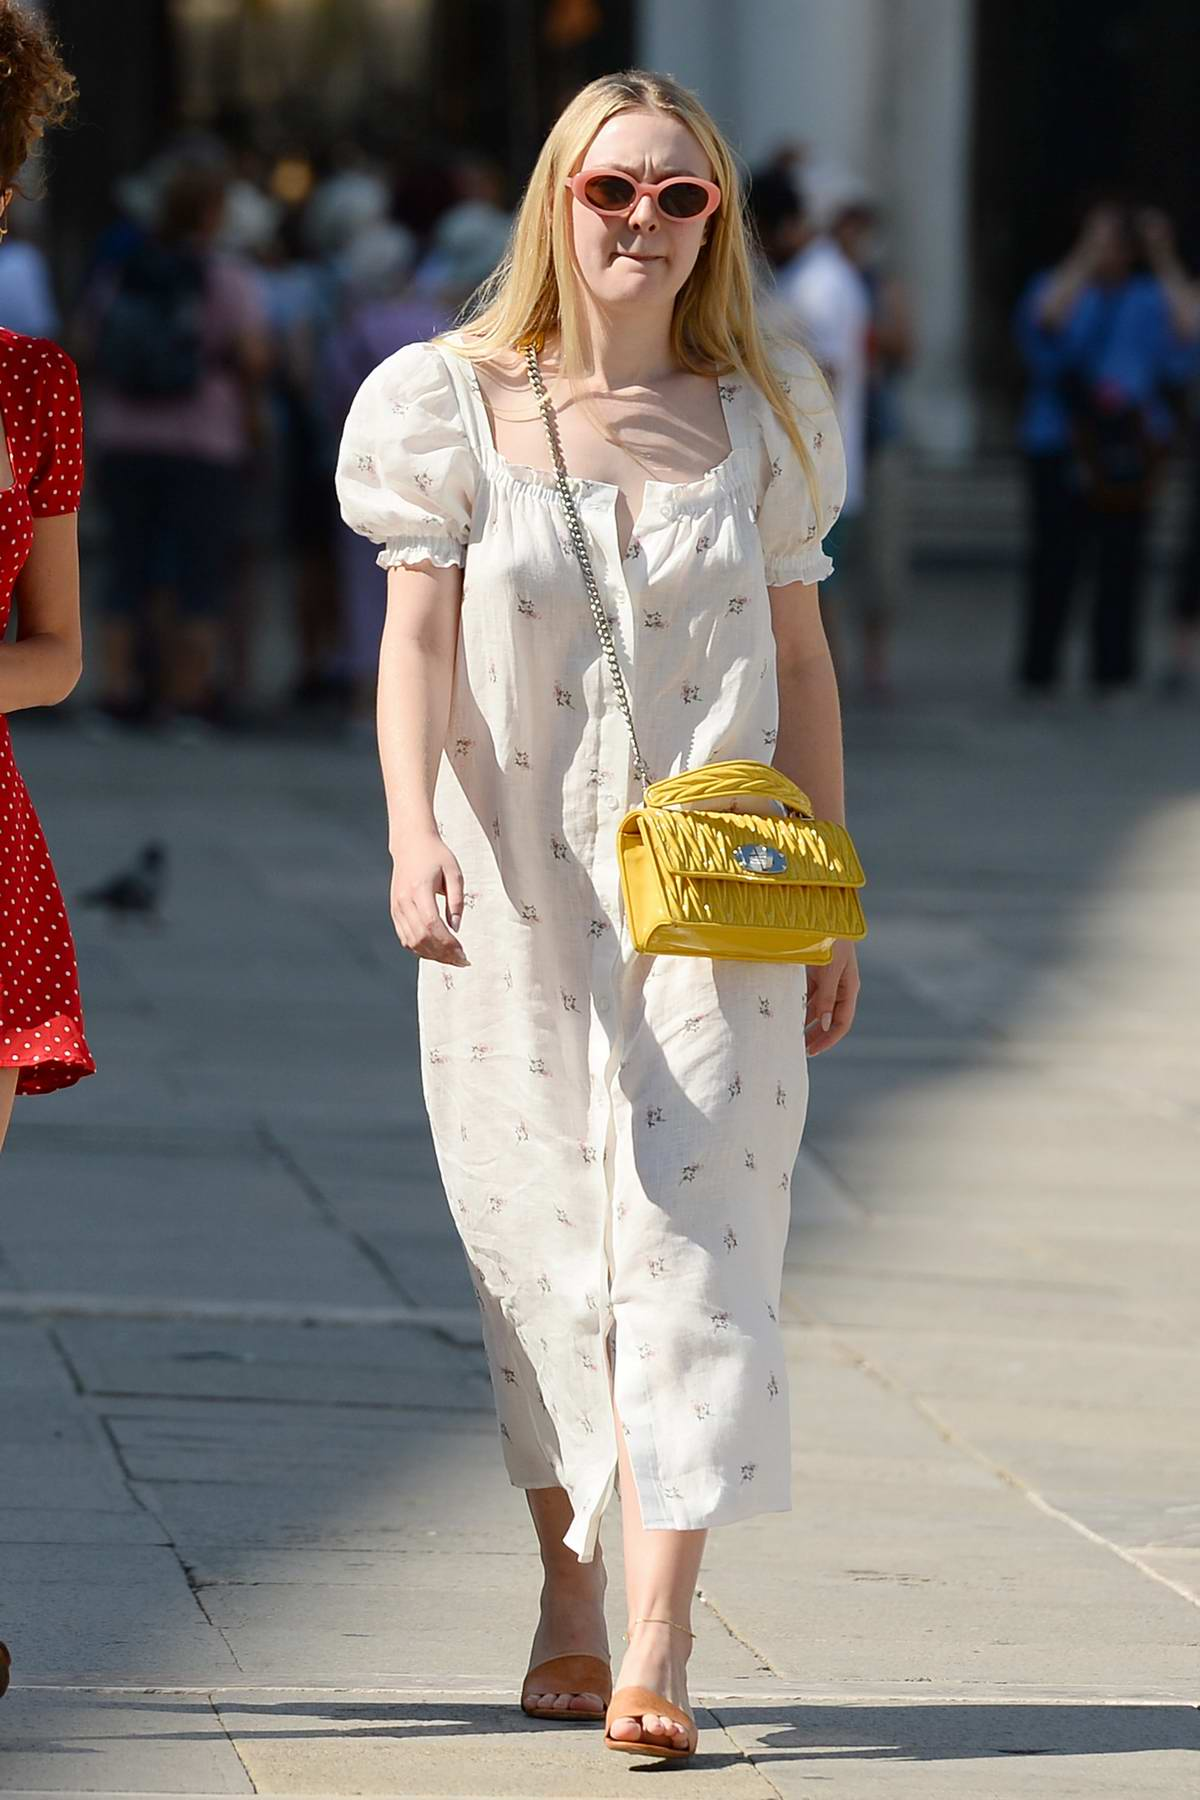 Dakota Fanning seen out with a friend while enjoying the sights and food in Venice, Italy